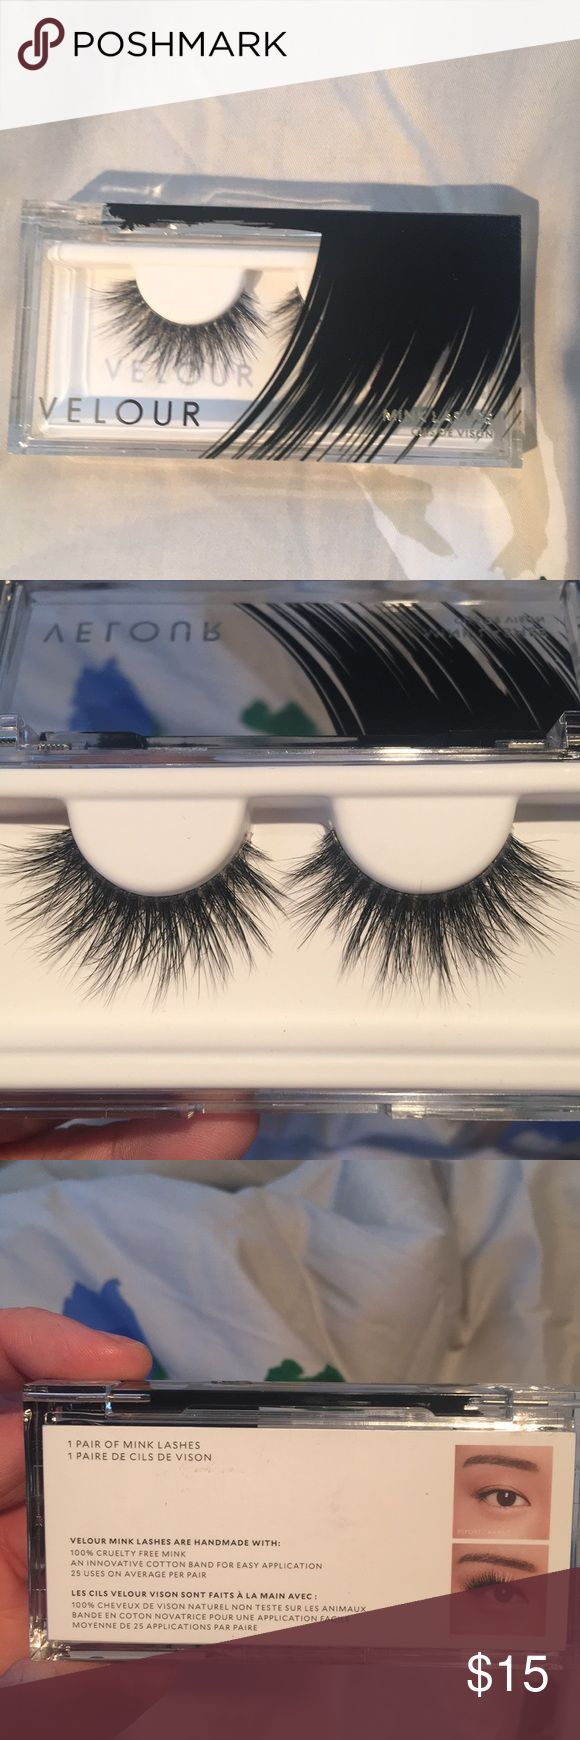 Velour lashes New velour eye lashes in dreamgirl. Never worn and is still in original case. If interested please make an offer below ♥️ velour Makeup False Eyelashes